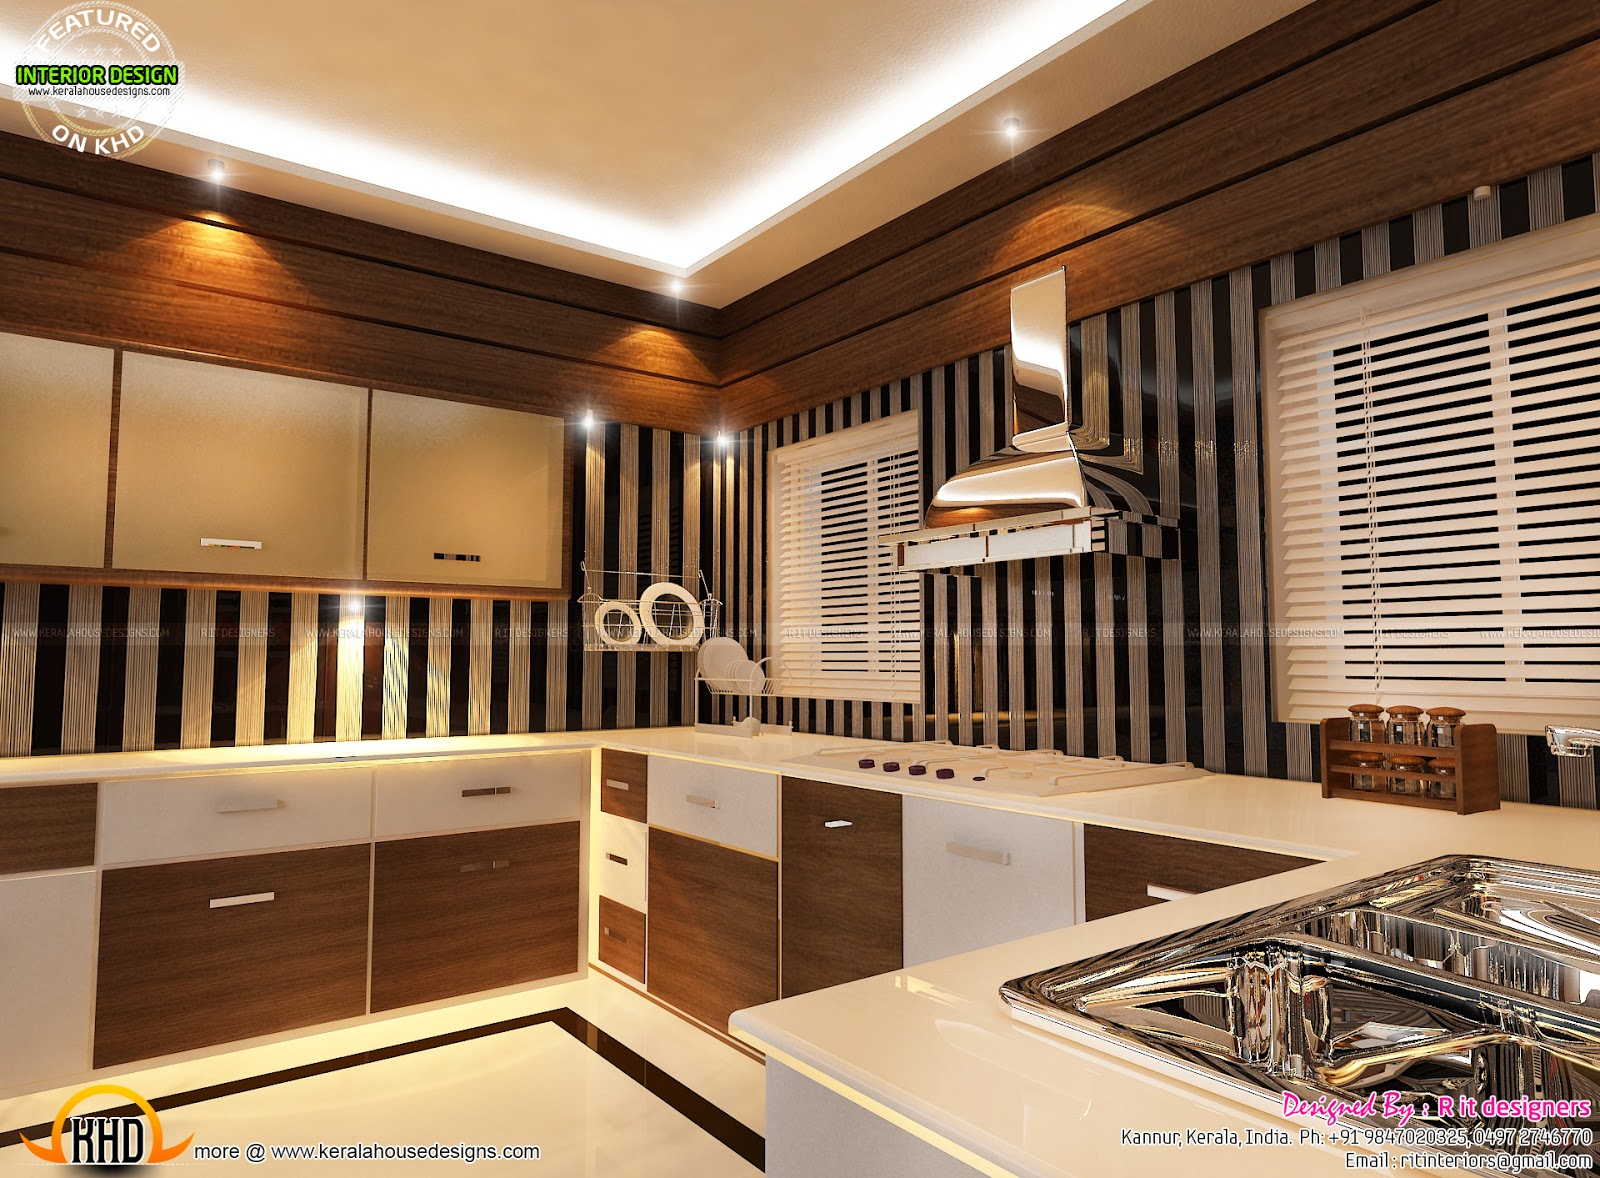 2194 sq ft nice contemporary house keralahousedesigns for 7 ft kitchen ideas